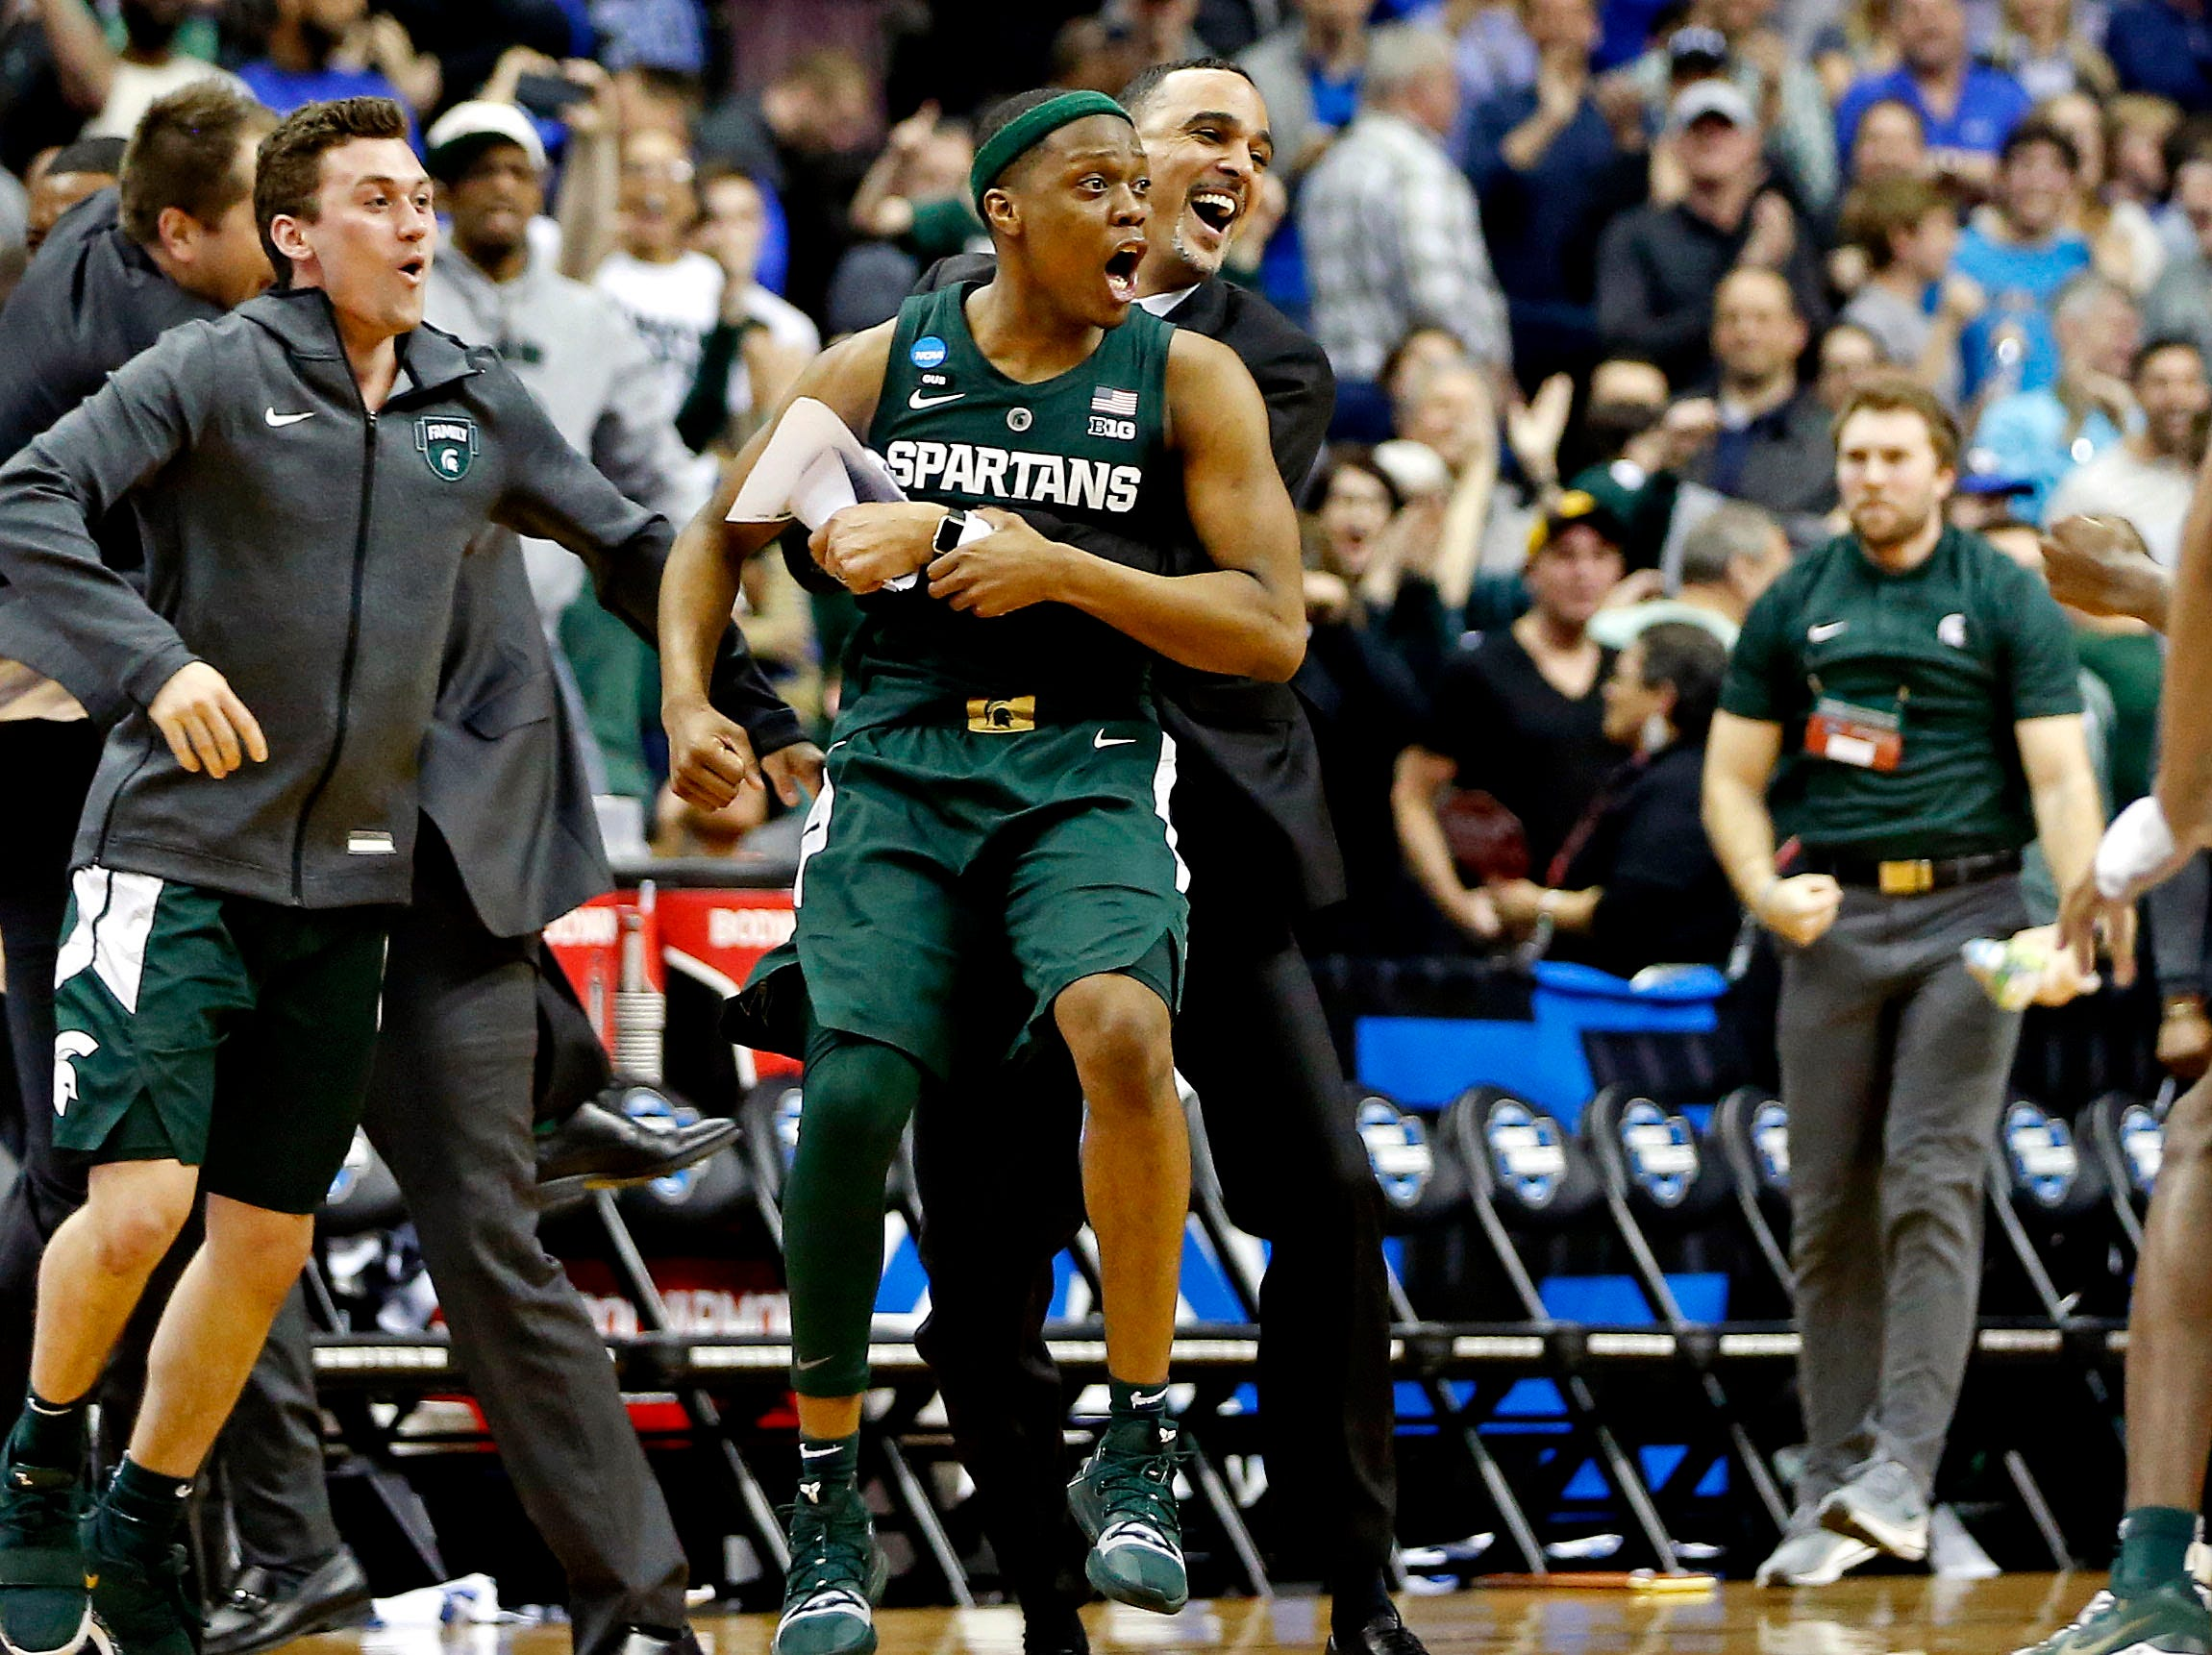 Mar 31, 2019; Washington, DC, USA; Michigan State Spartans guard Cassius Winston (5) celebrates after beating the Duke Blue Devils in the championship game of the east regional of the 2019 NCAA Tournament at Capital One Arena. Mandatory Credit: Amber Searls-USA TODAY Sports